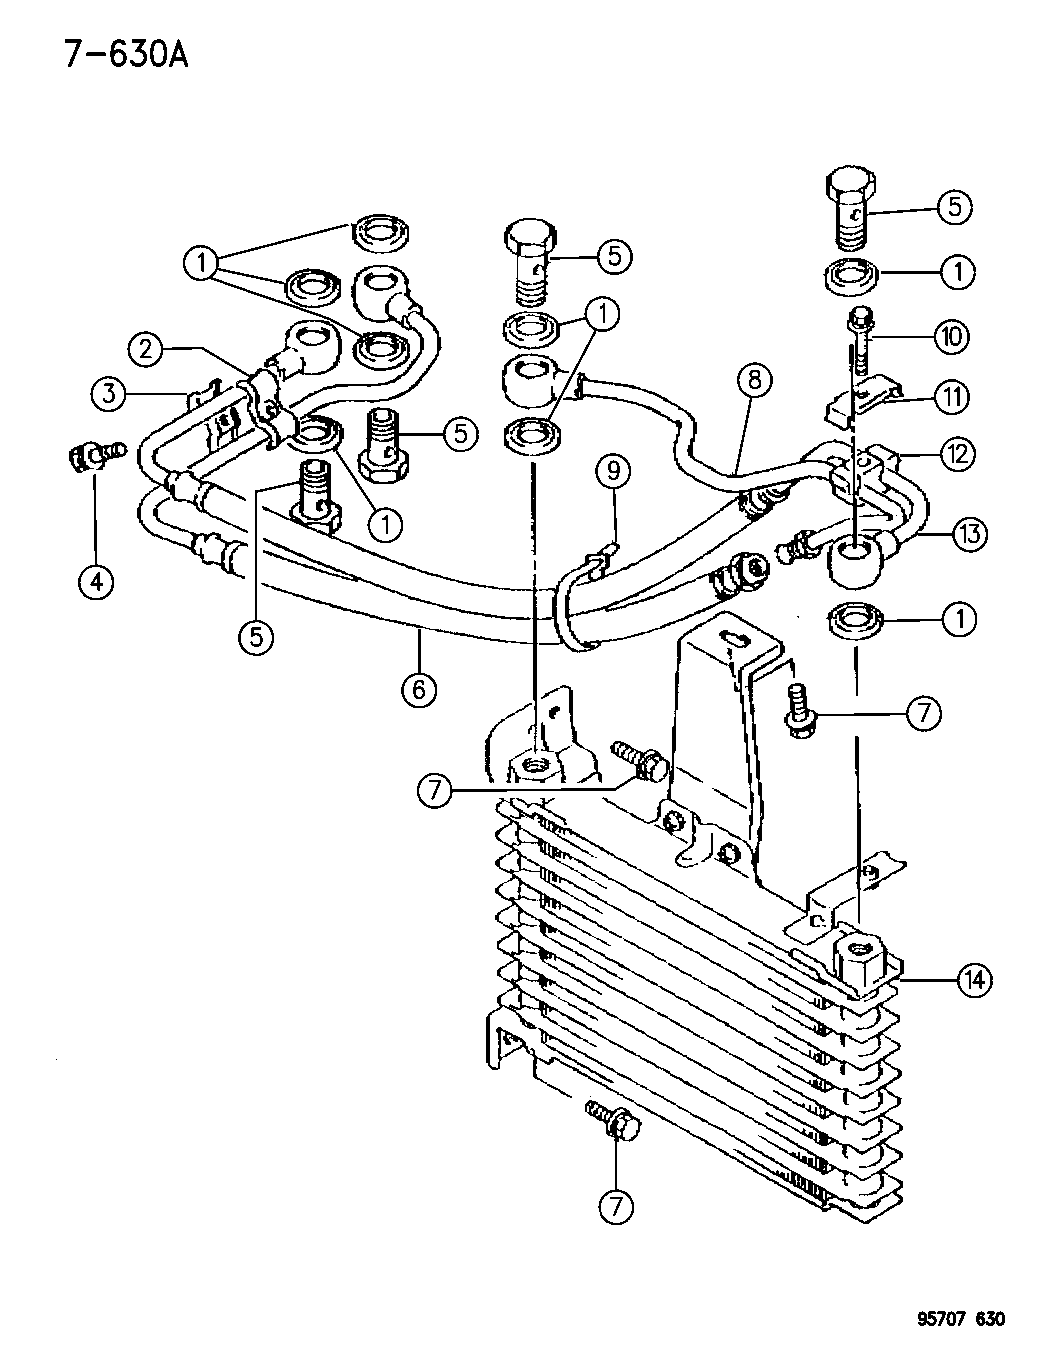 1991 dodge stealth engine diagram